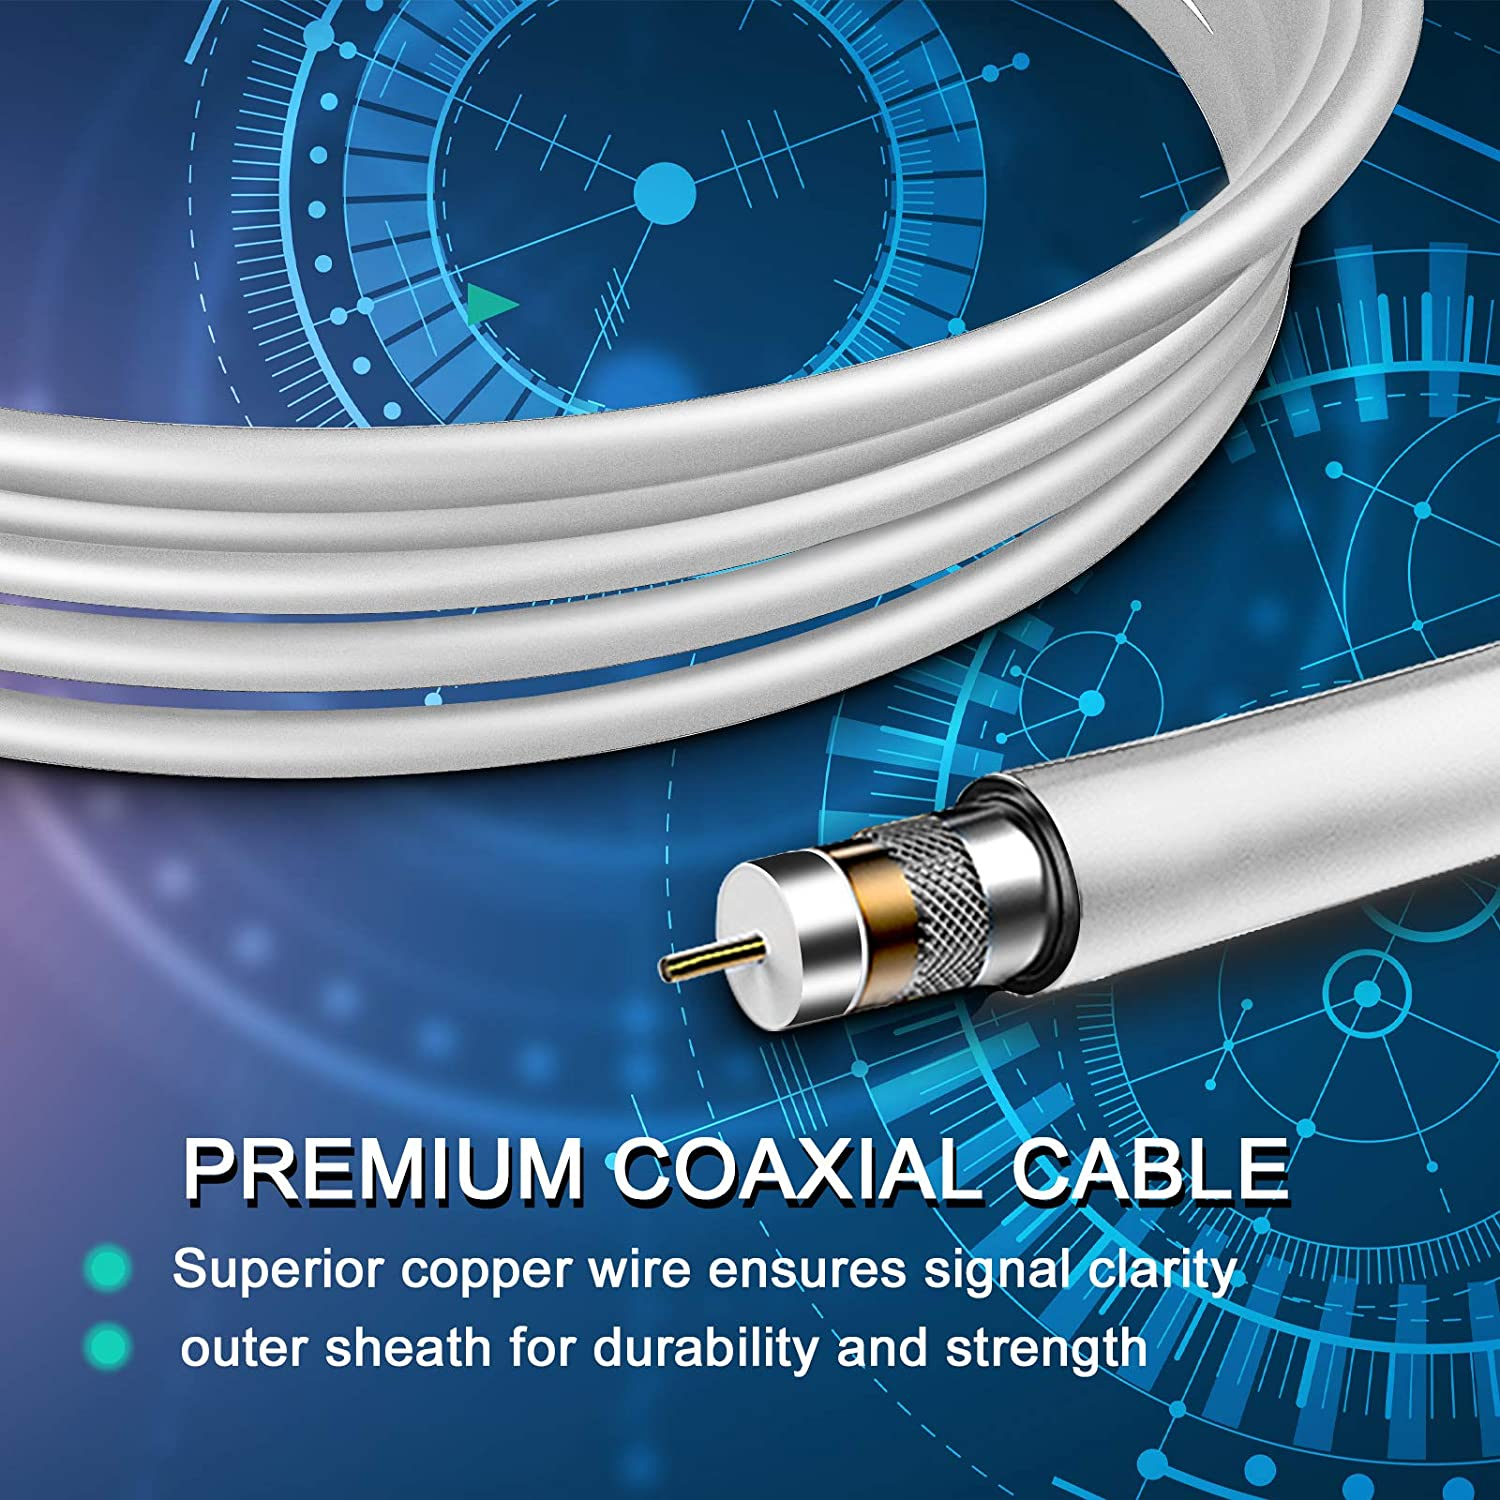 18 Ft Premium Coaxial Cable 2020 Latest TV Antenna VHF UHF Freeview Channels Antenna with Amplifier Signal Booster 150 Miles Range Digital Antenna for HDTV HDTV Antenna Support 4K 1080P